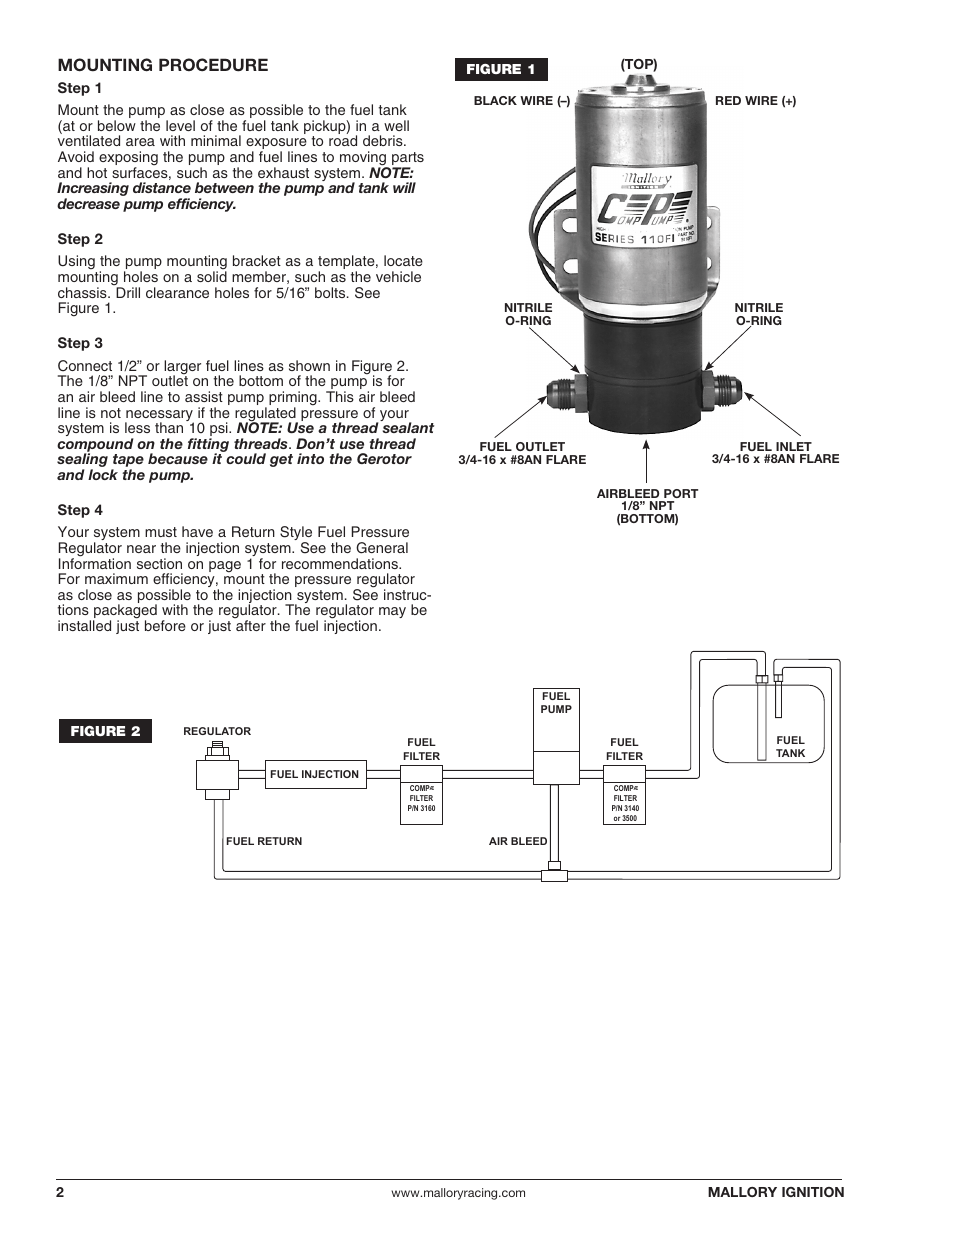 hight resolution of mallory fuel pump wiring diagram wiring diagrammounting procedure mallory ignition mallory comp pump series 110fimounting procedure